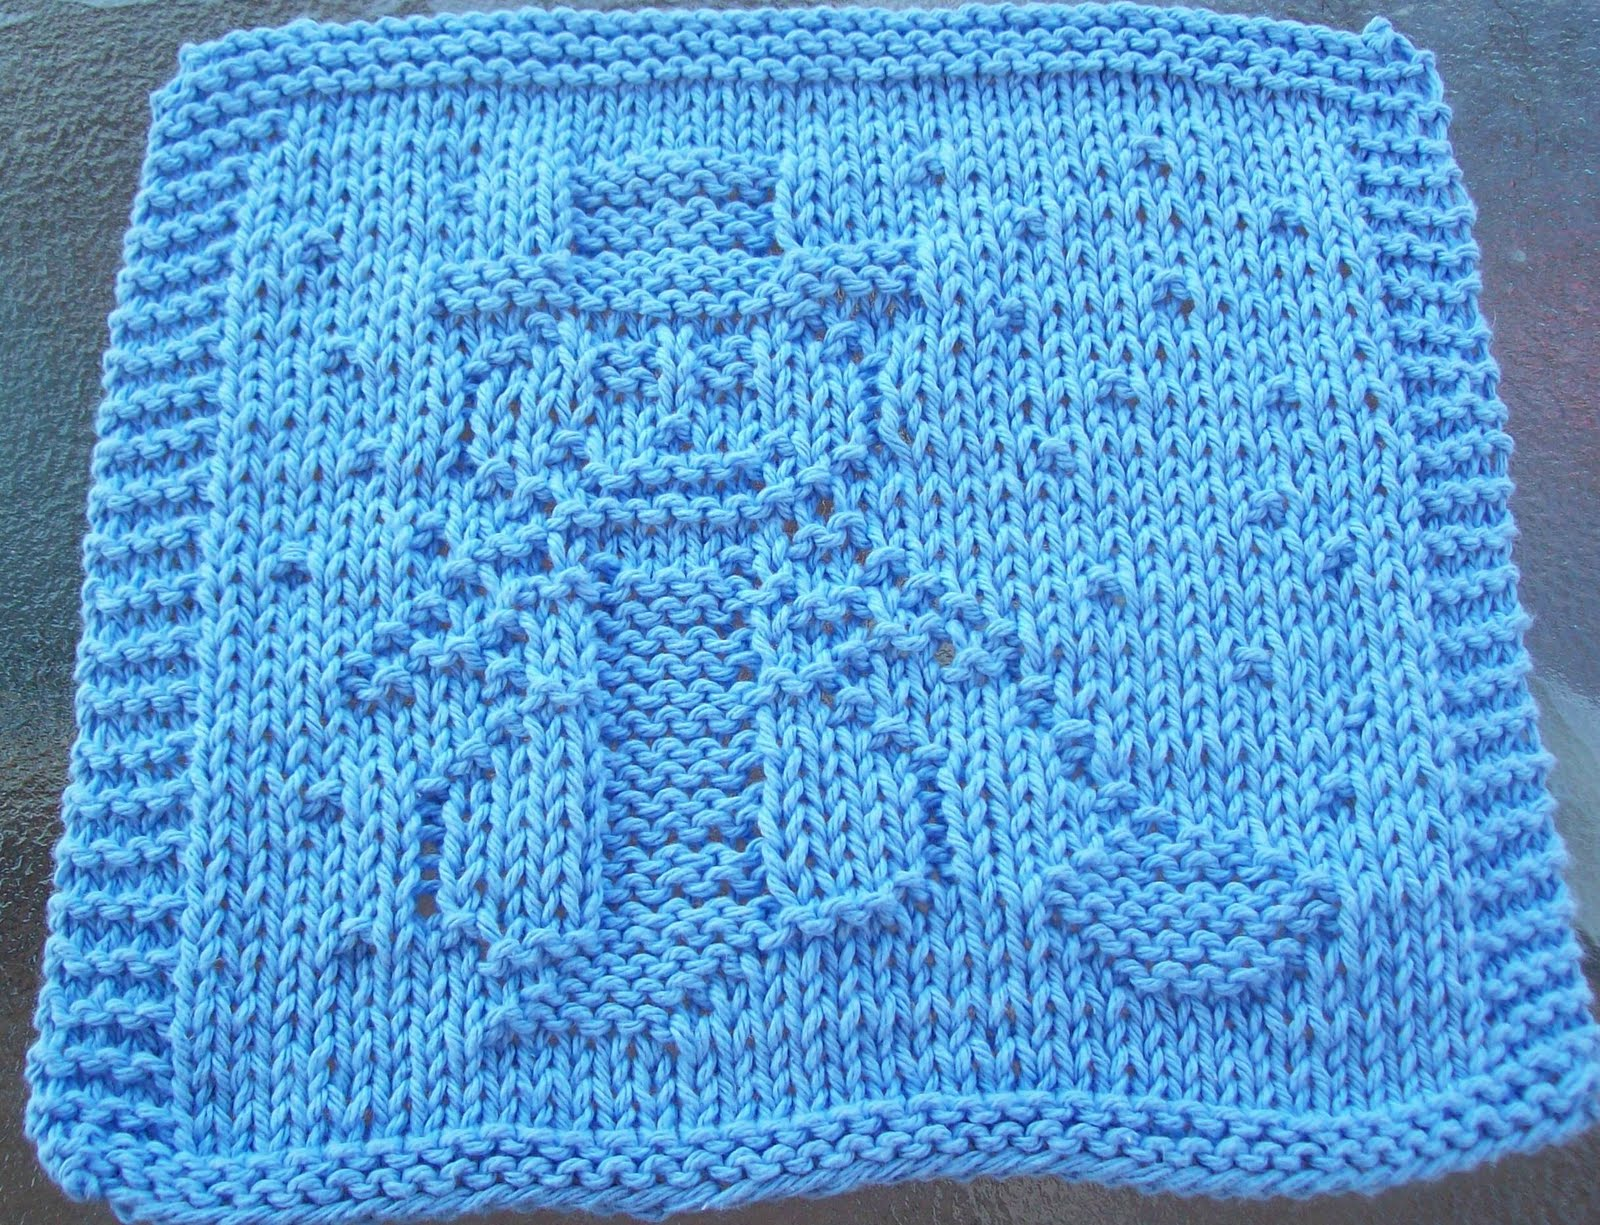 Knit Patterns For Dishcloths Free : Knitting Dishcloth Patterns Fish